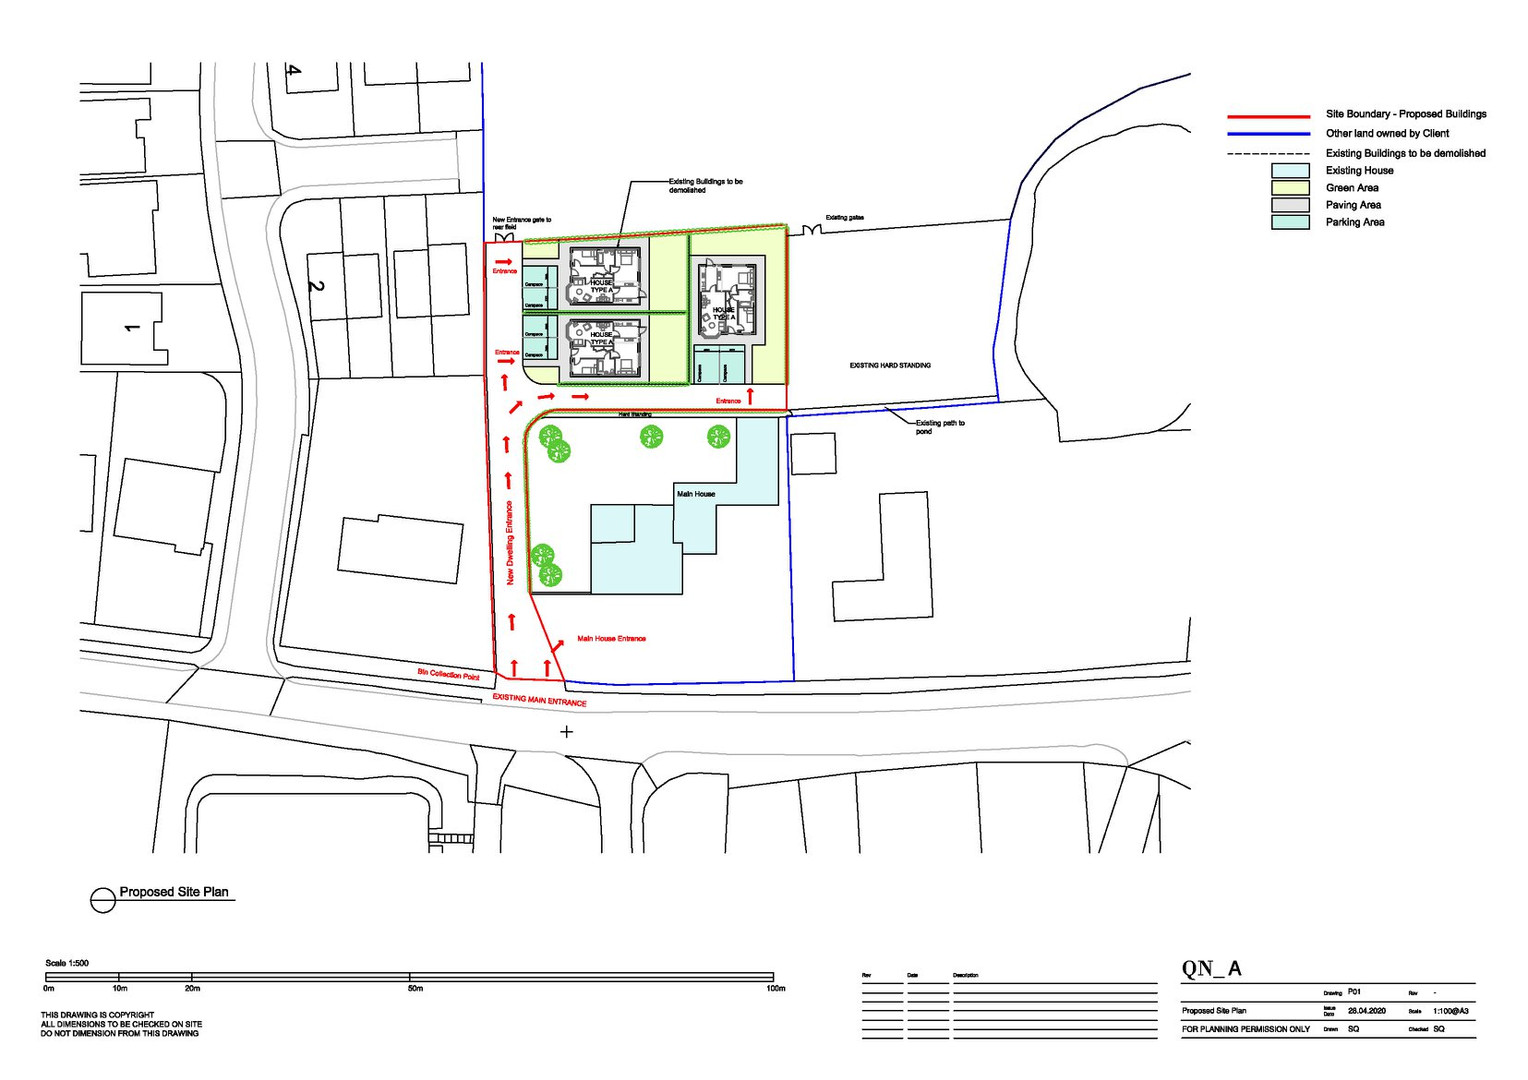 QN Design Architectural Services: New Build Hill Farm, Rugby